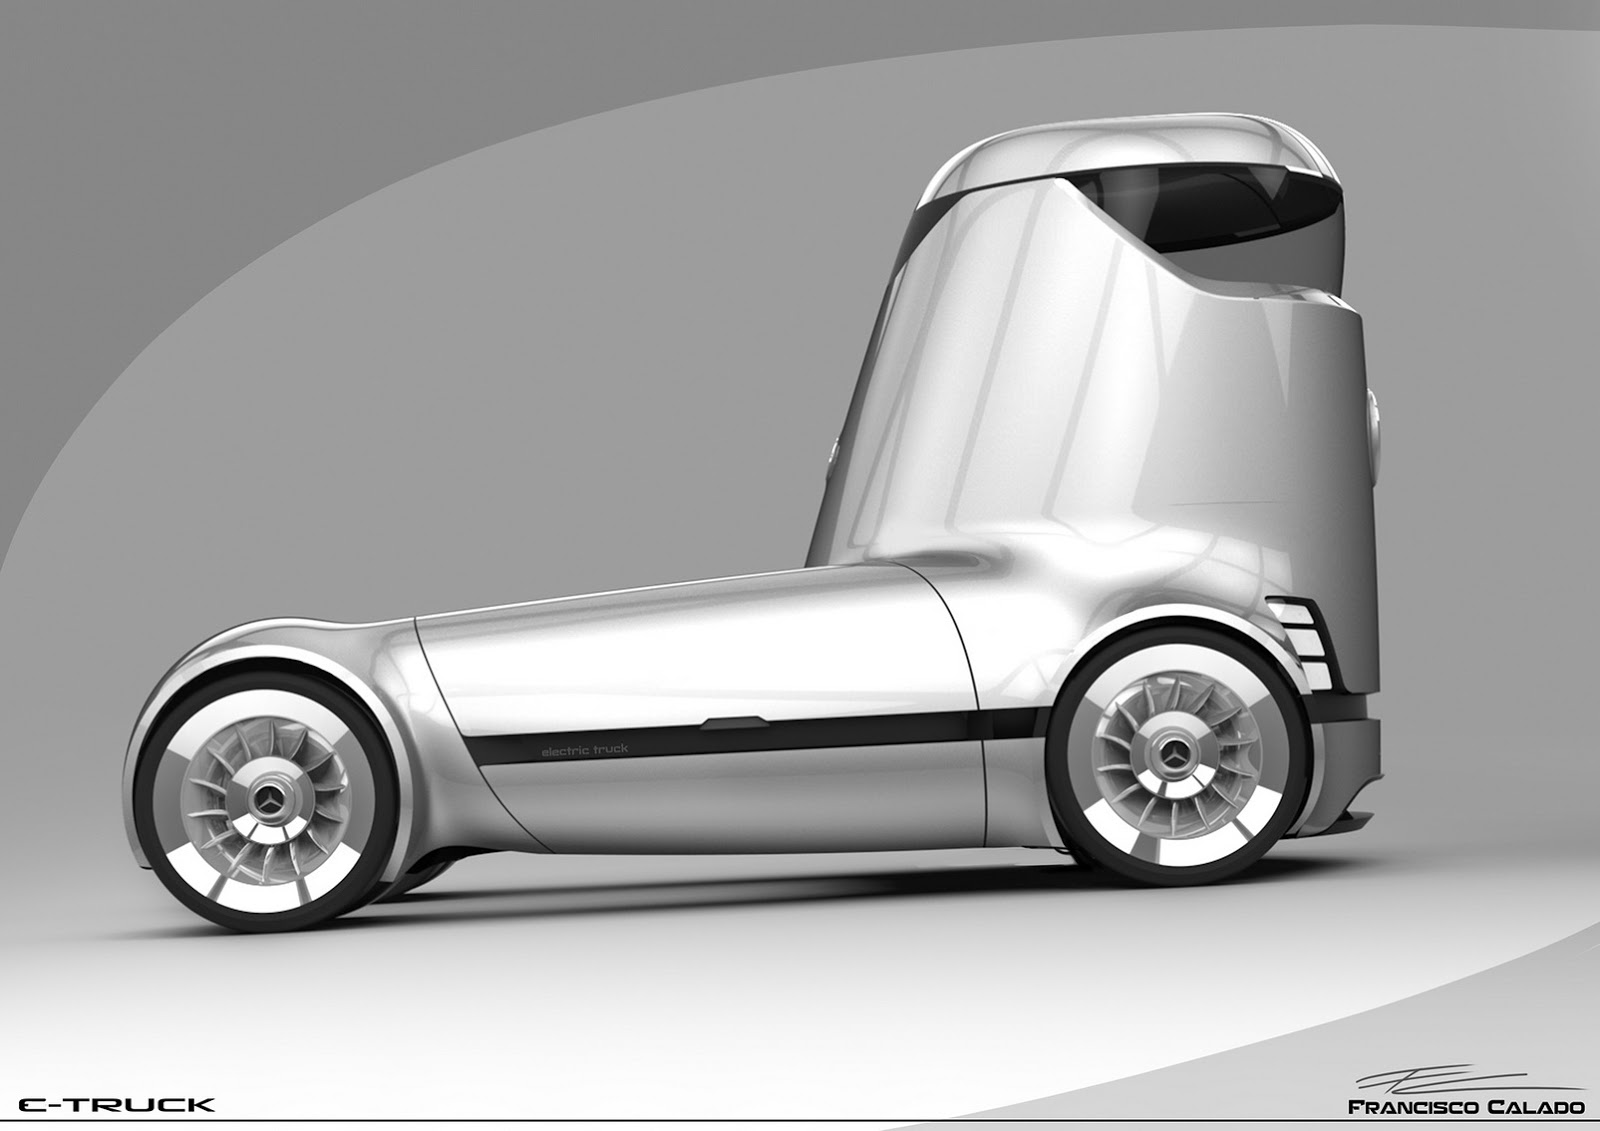 Drawn truck future GALLERY Study Mercedes Truck From